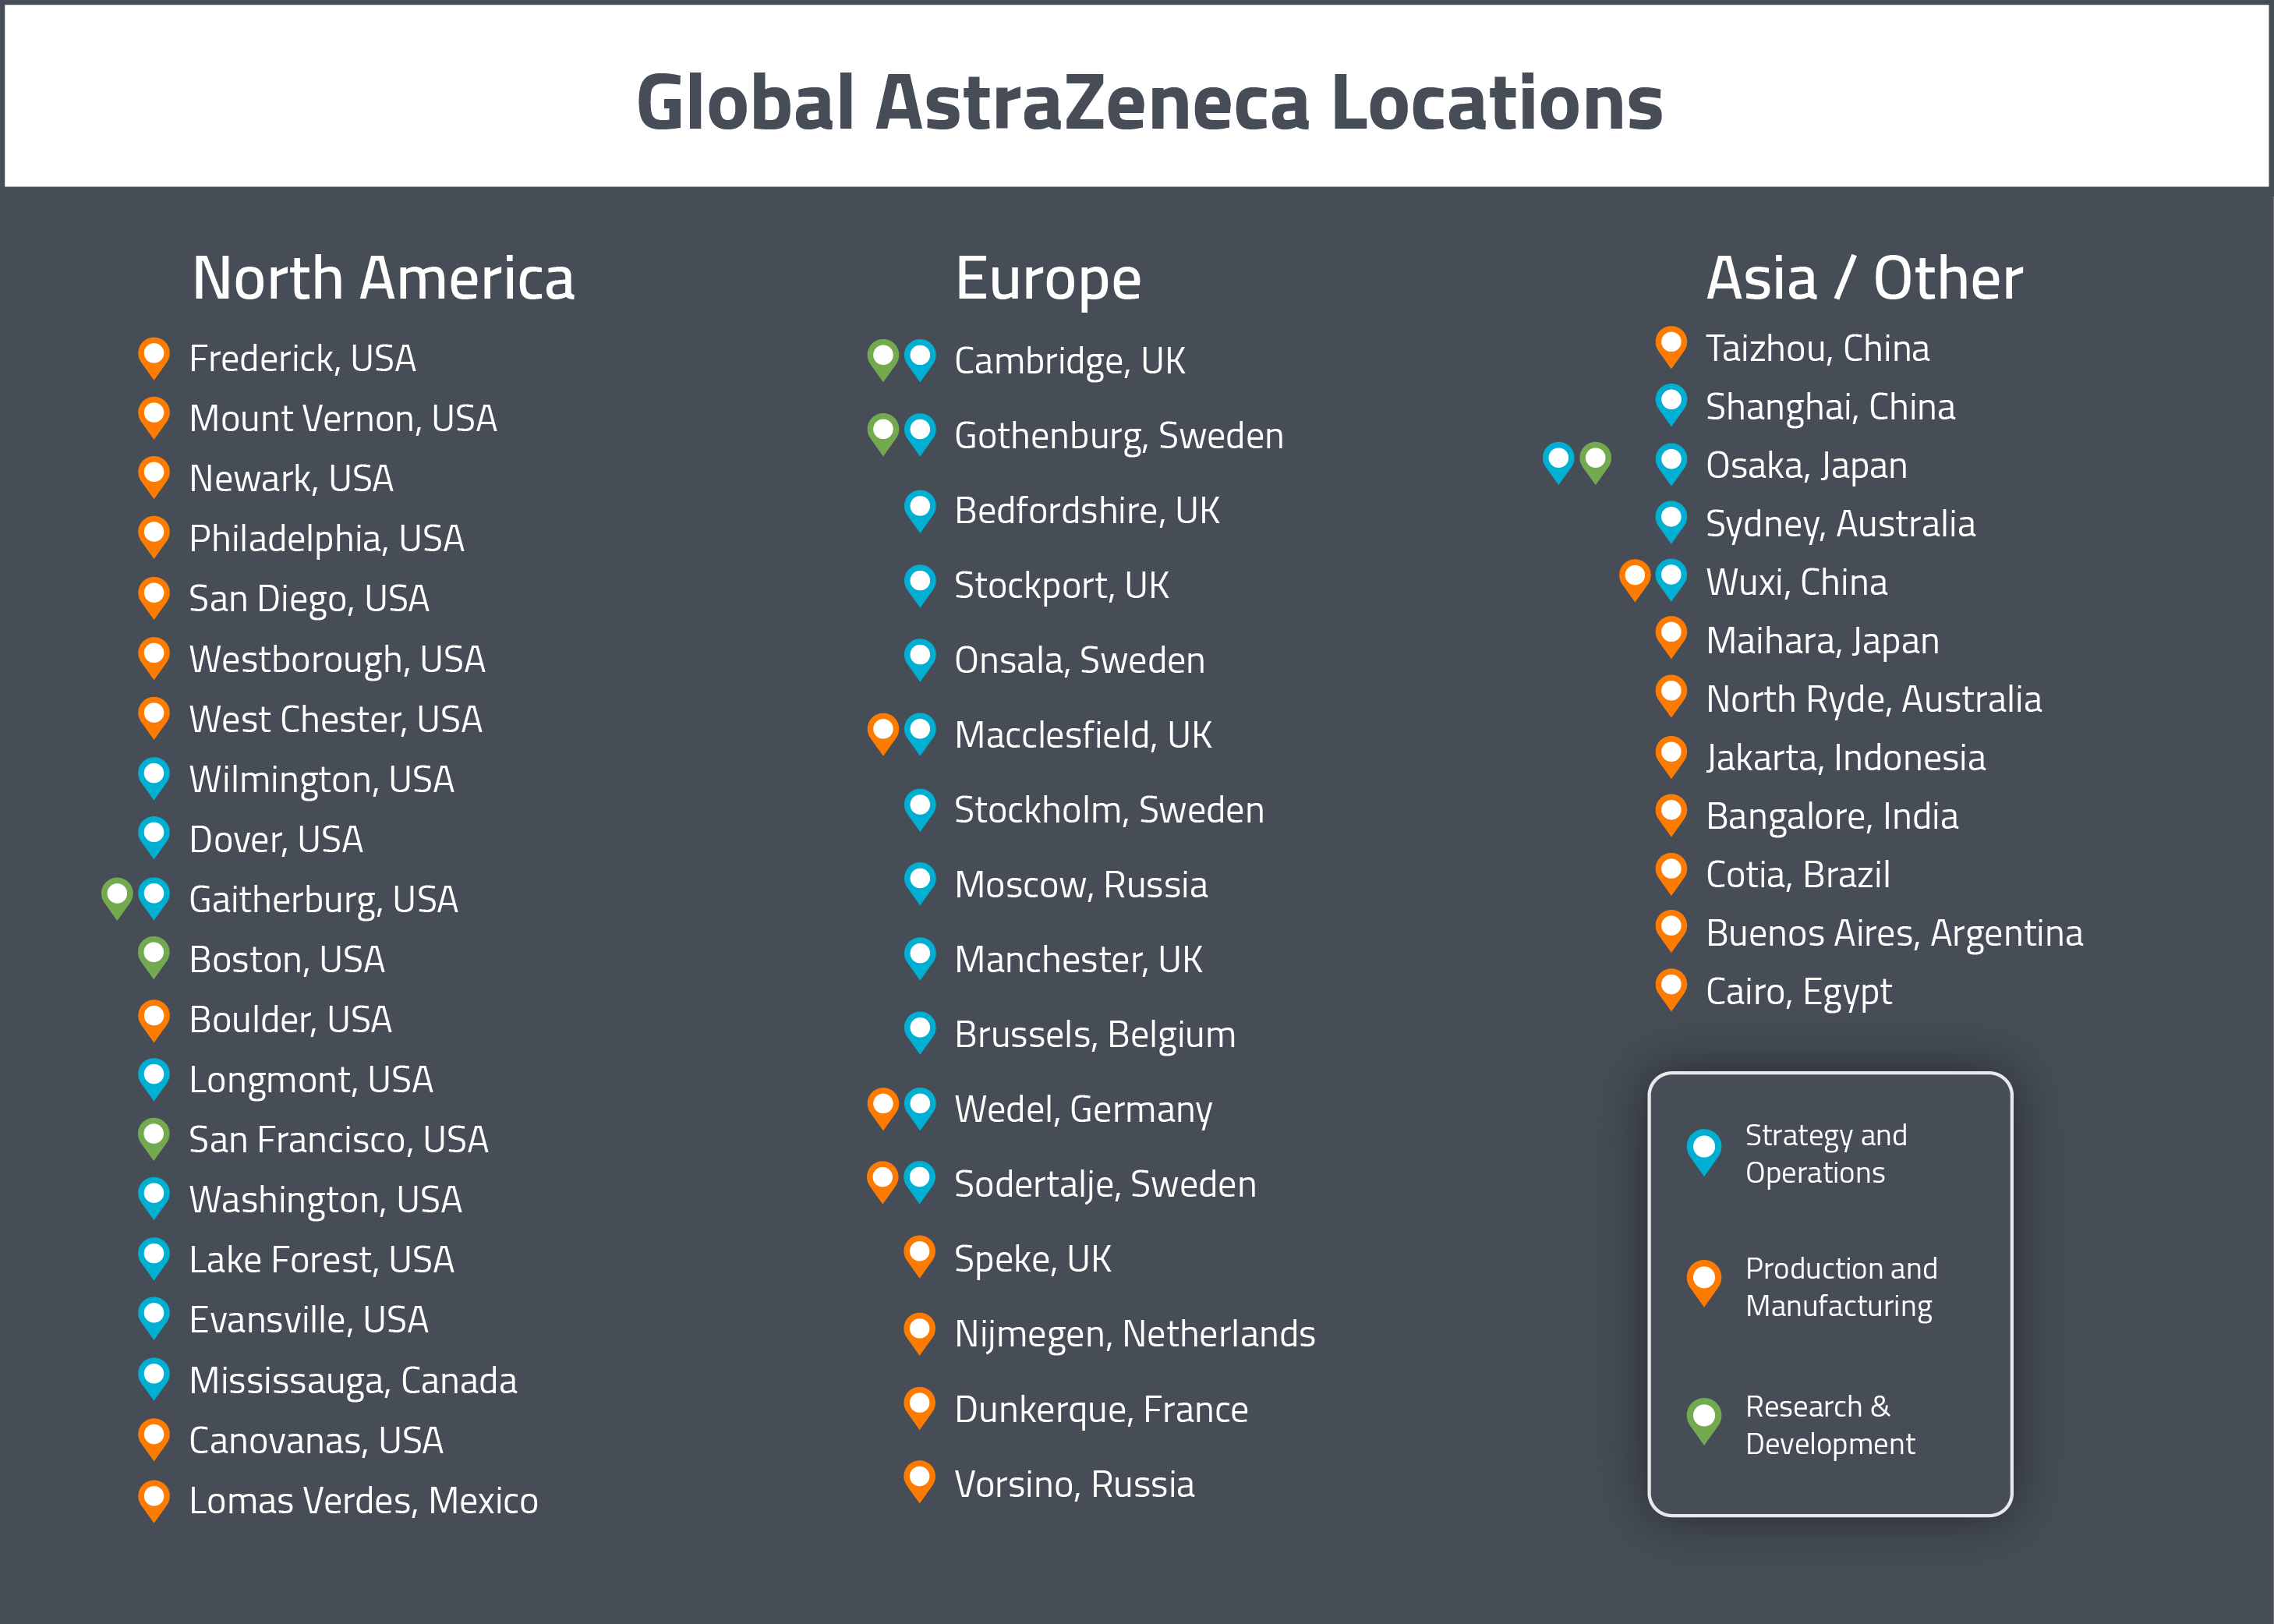 A map of AstraZeneca's Global Drug Development and Manufacturing locations 2